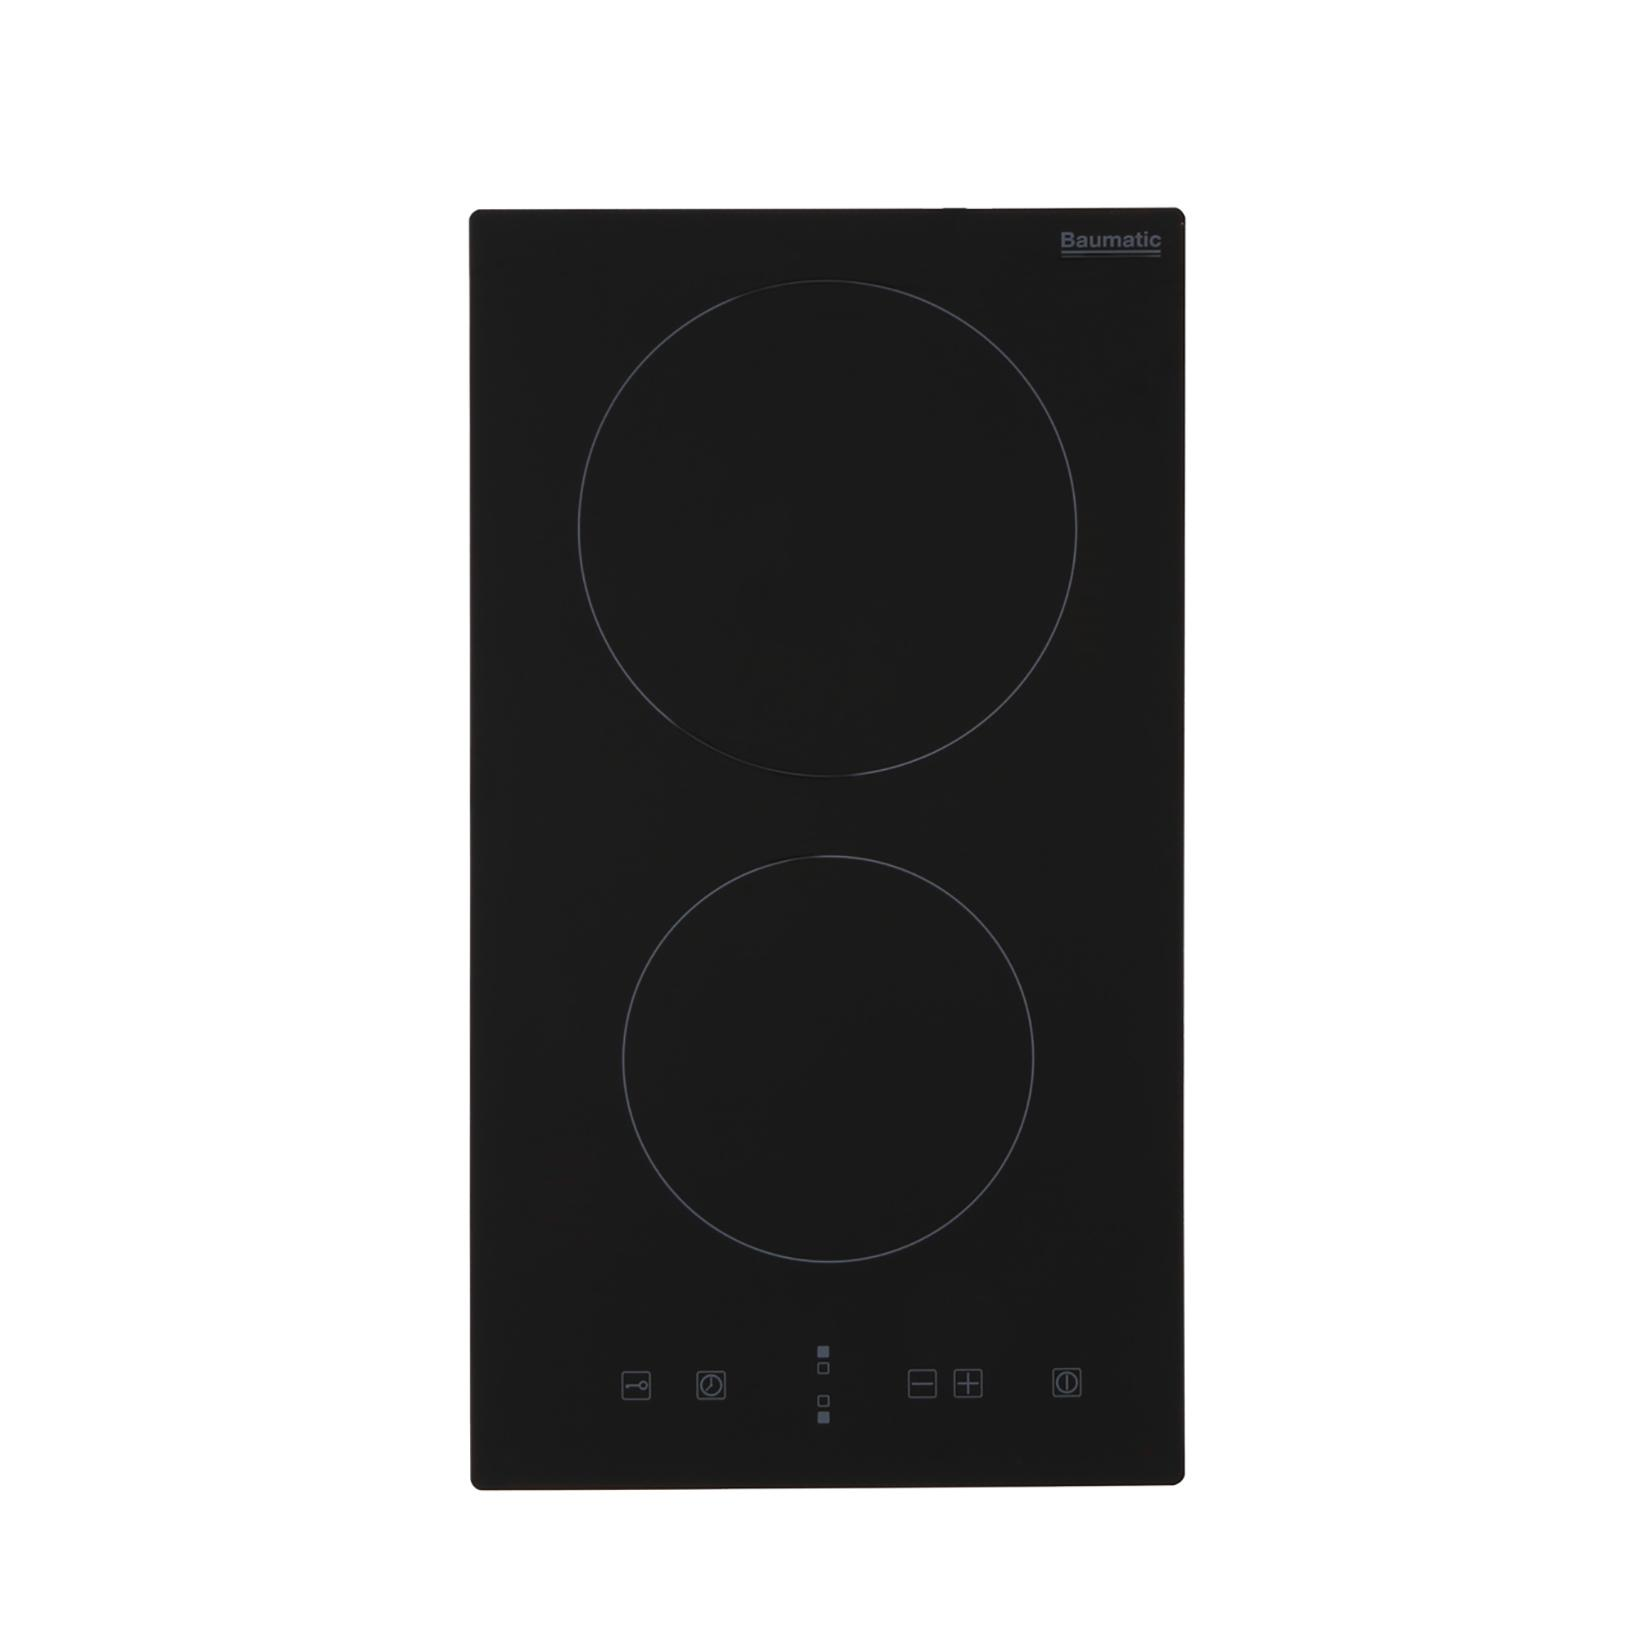 Baumatic Vantage BHC310 2 Zone Ceramic Domino Hob